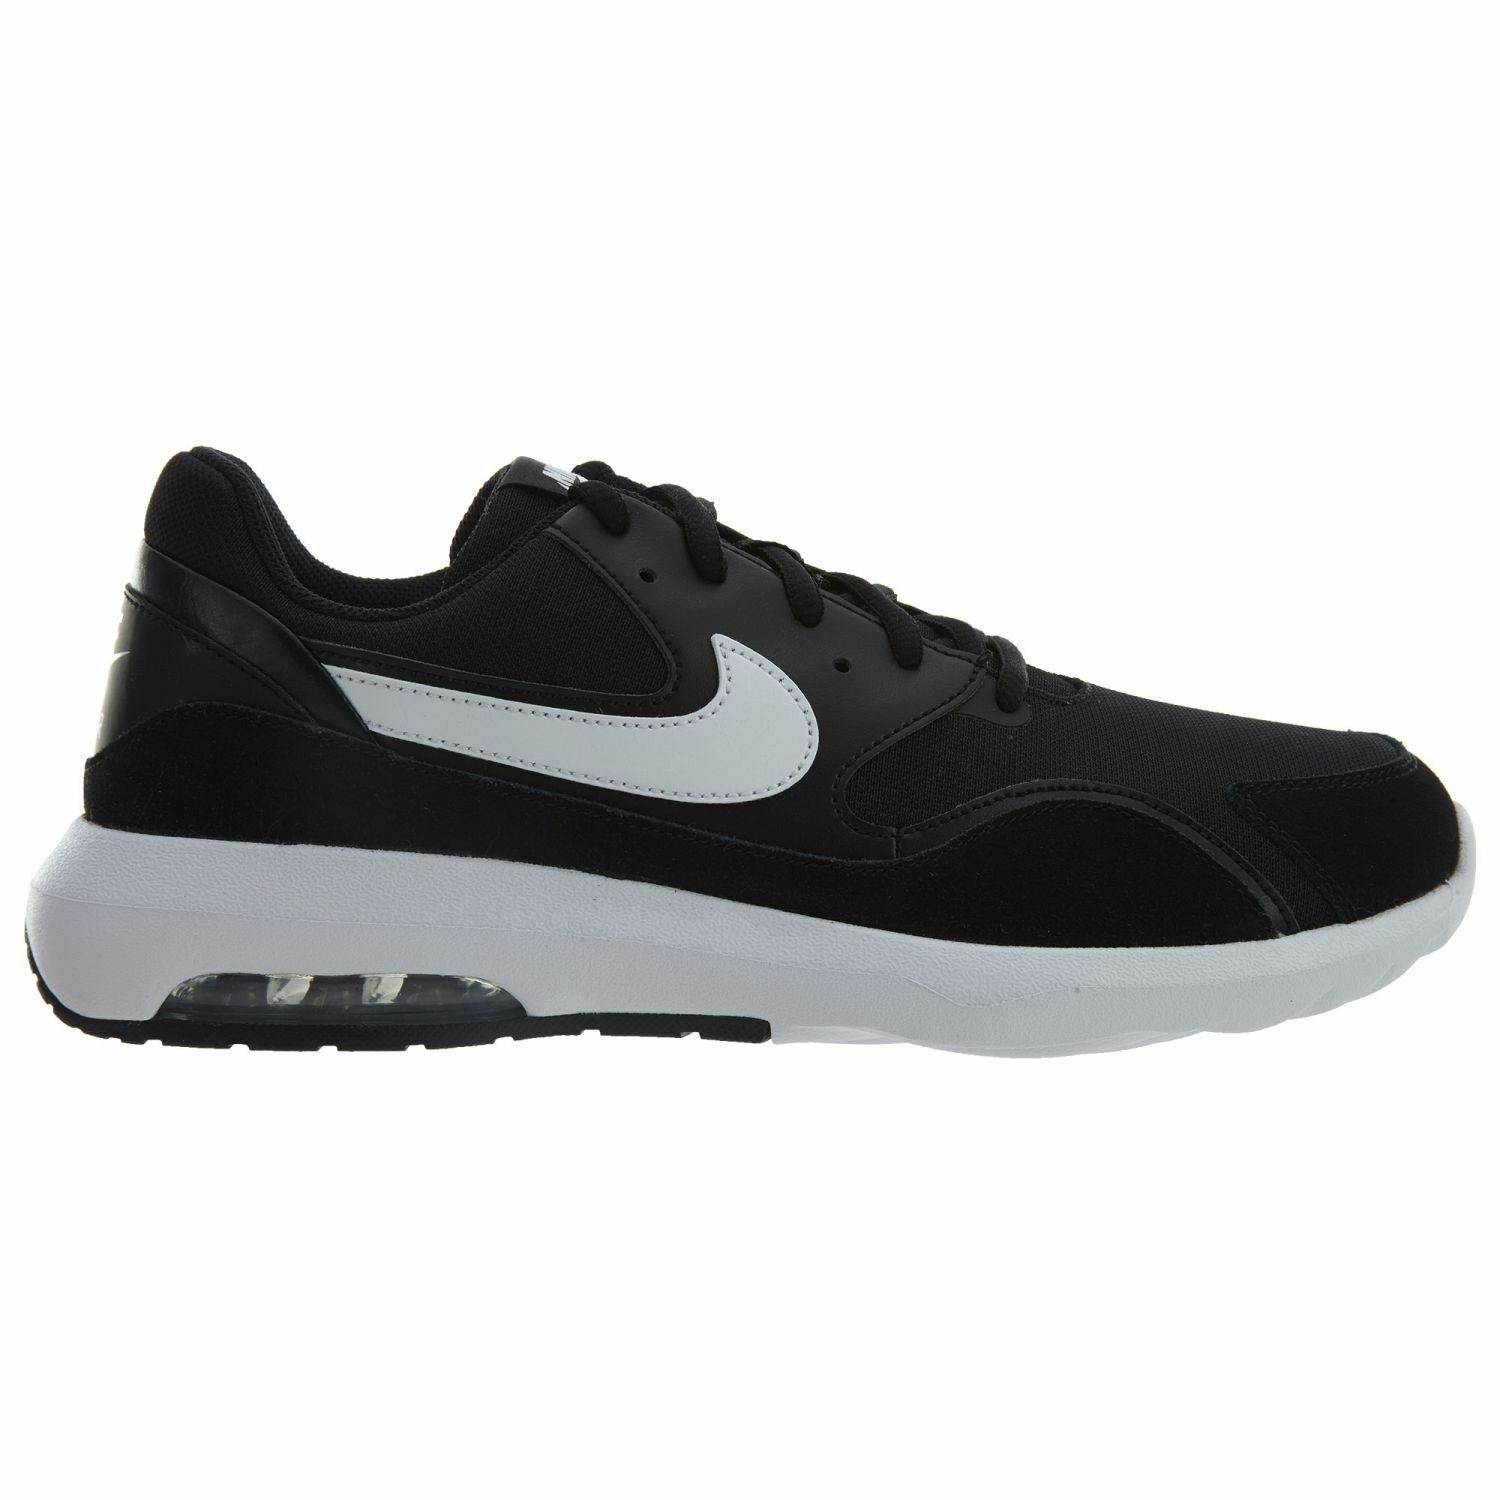 Nike Air Max Nostalgic Mens 916781-002 Black White Running shoes Size 8